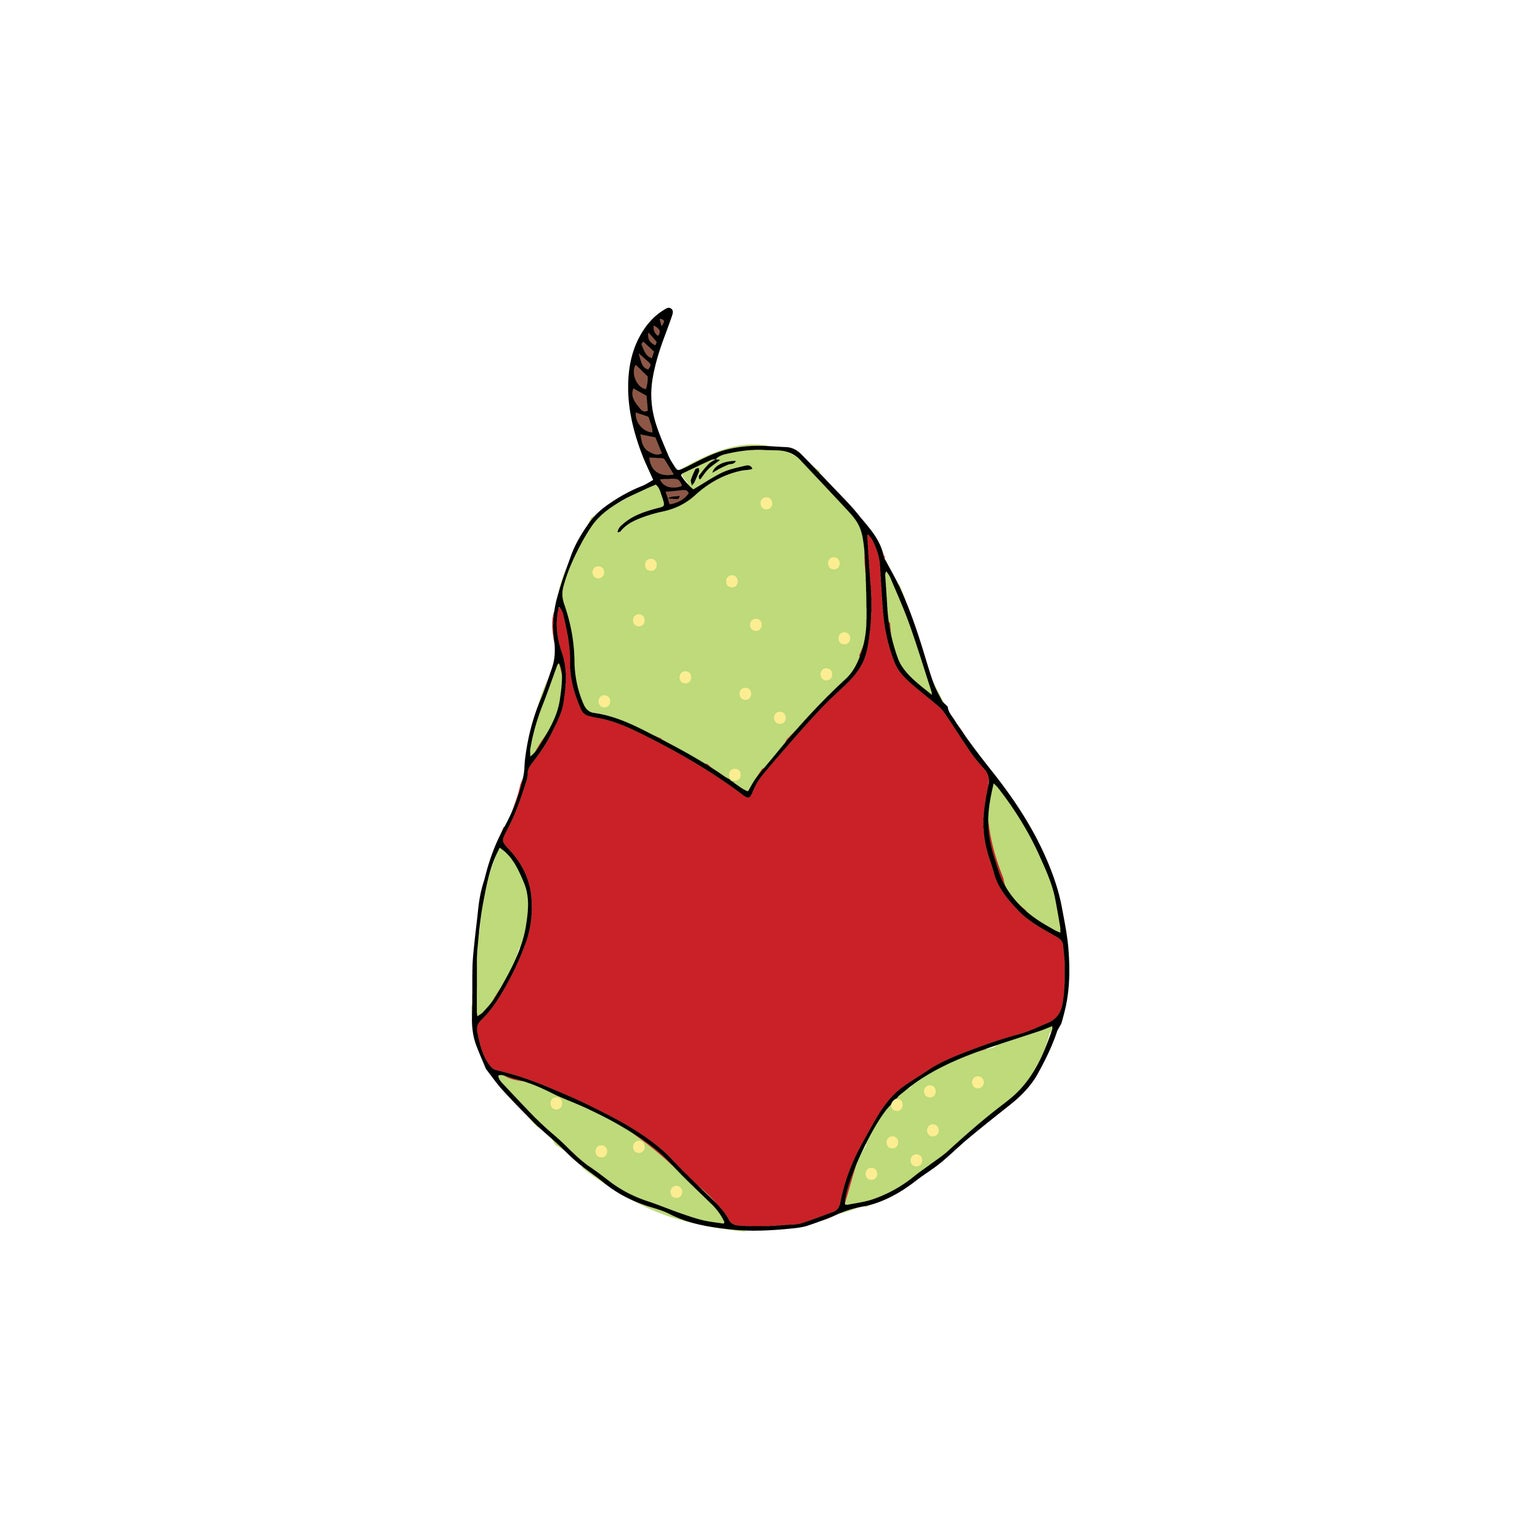 Image of Pear Swimsuit Sticker